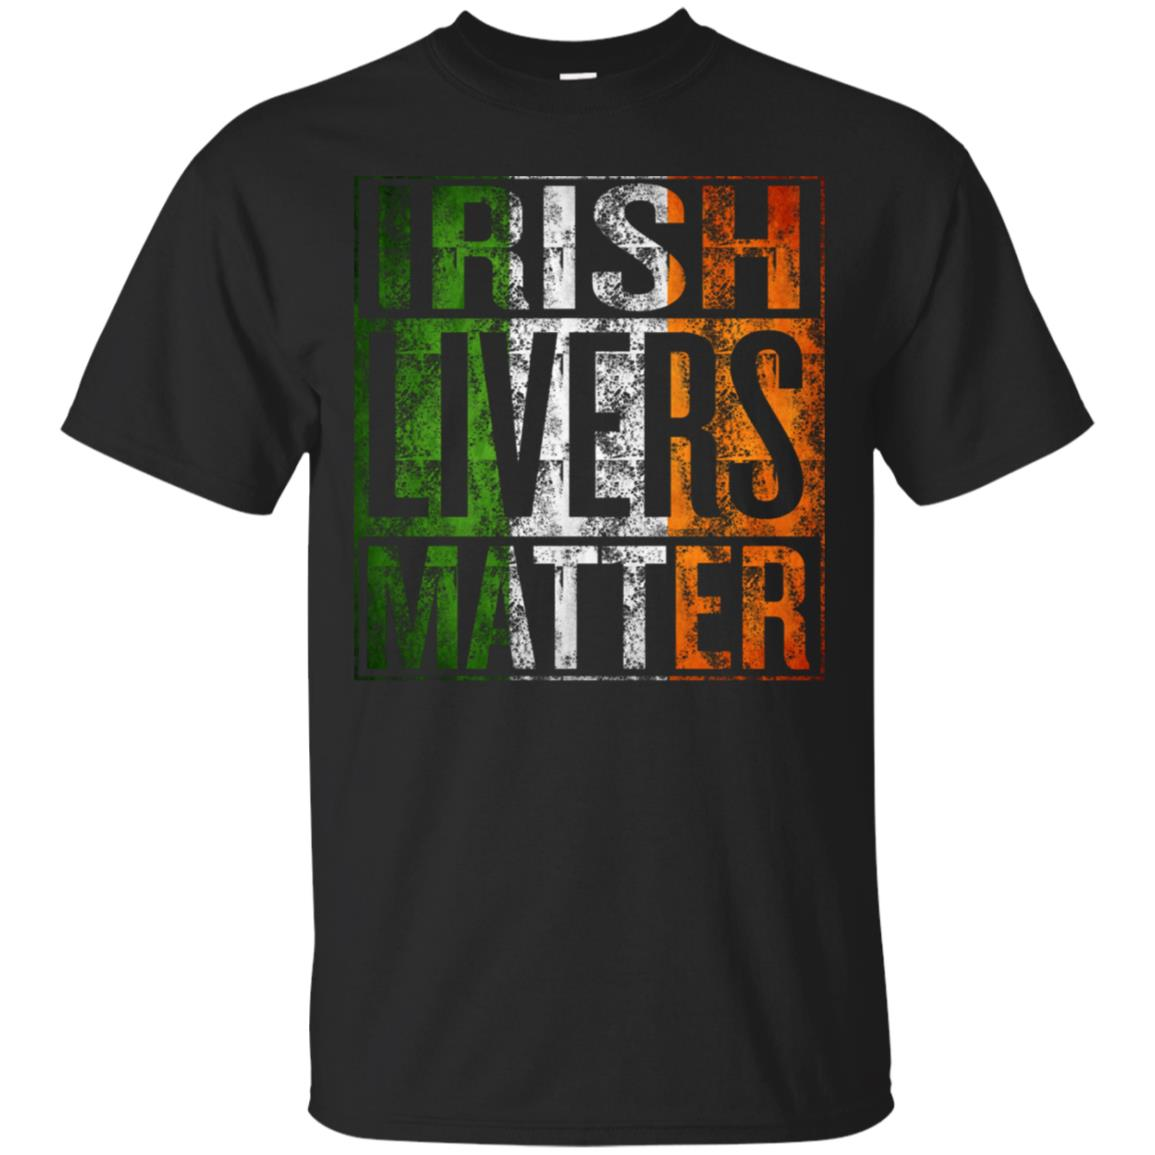 ST. PATRICK'S DAY T-SHIRT IRISH LIVERS MATTER FUNNY GIFT 99promocode